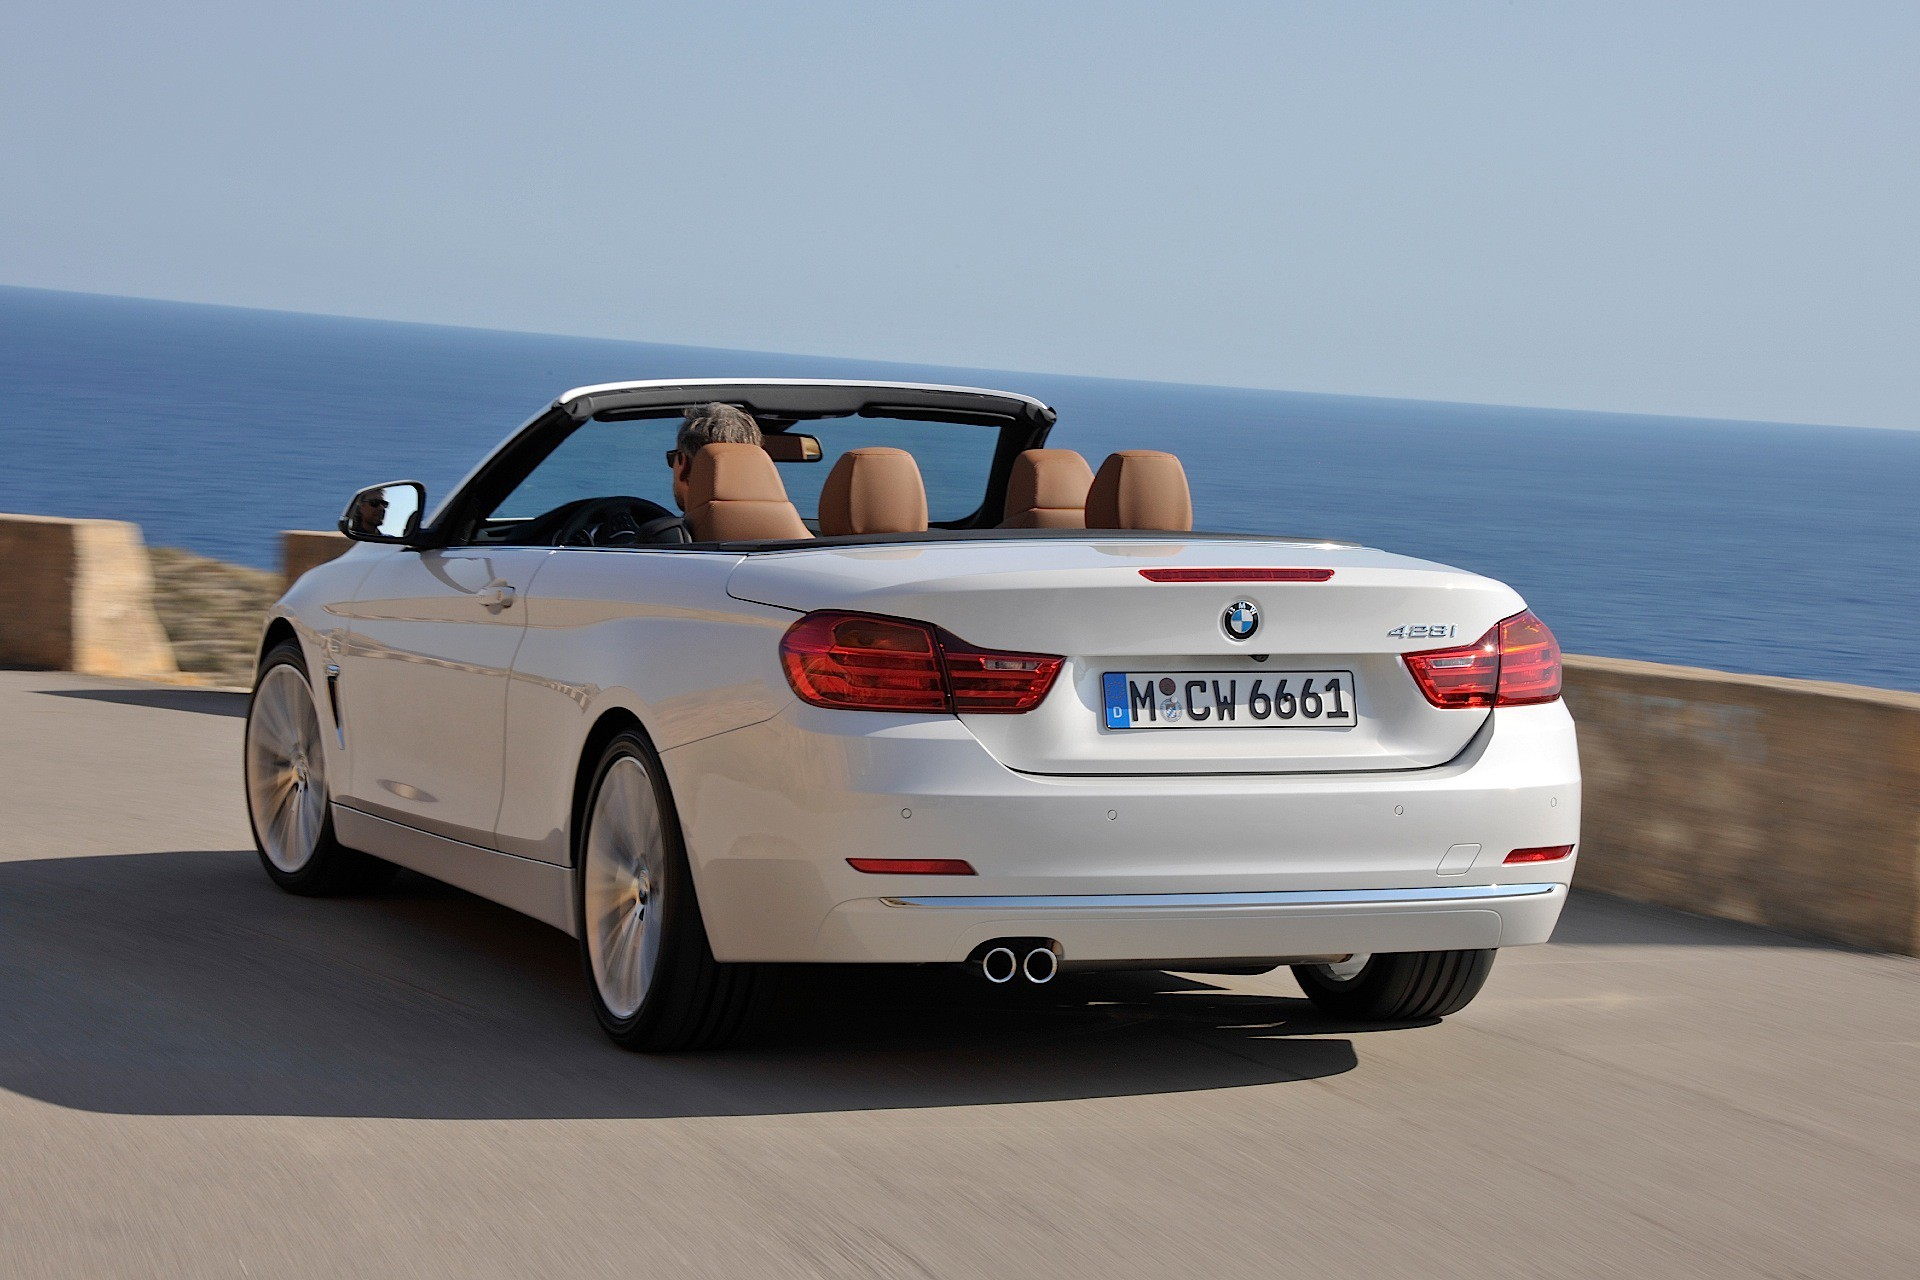 BMW SERIES - 4 door convertible bmw